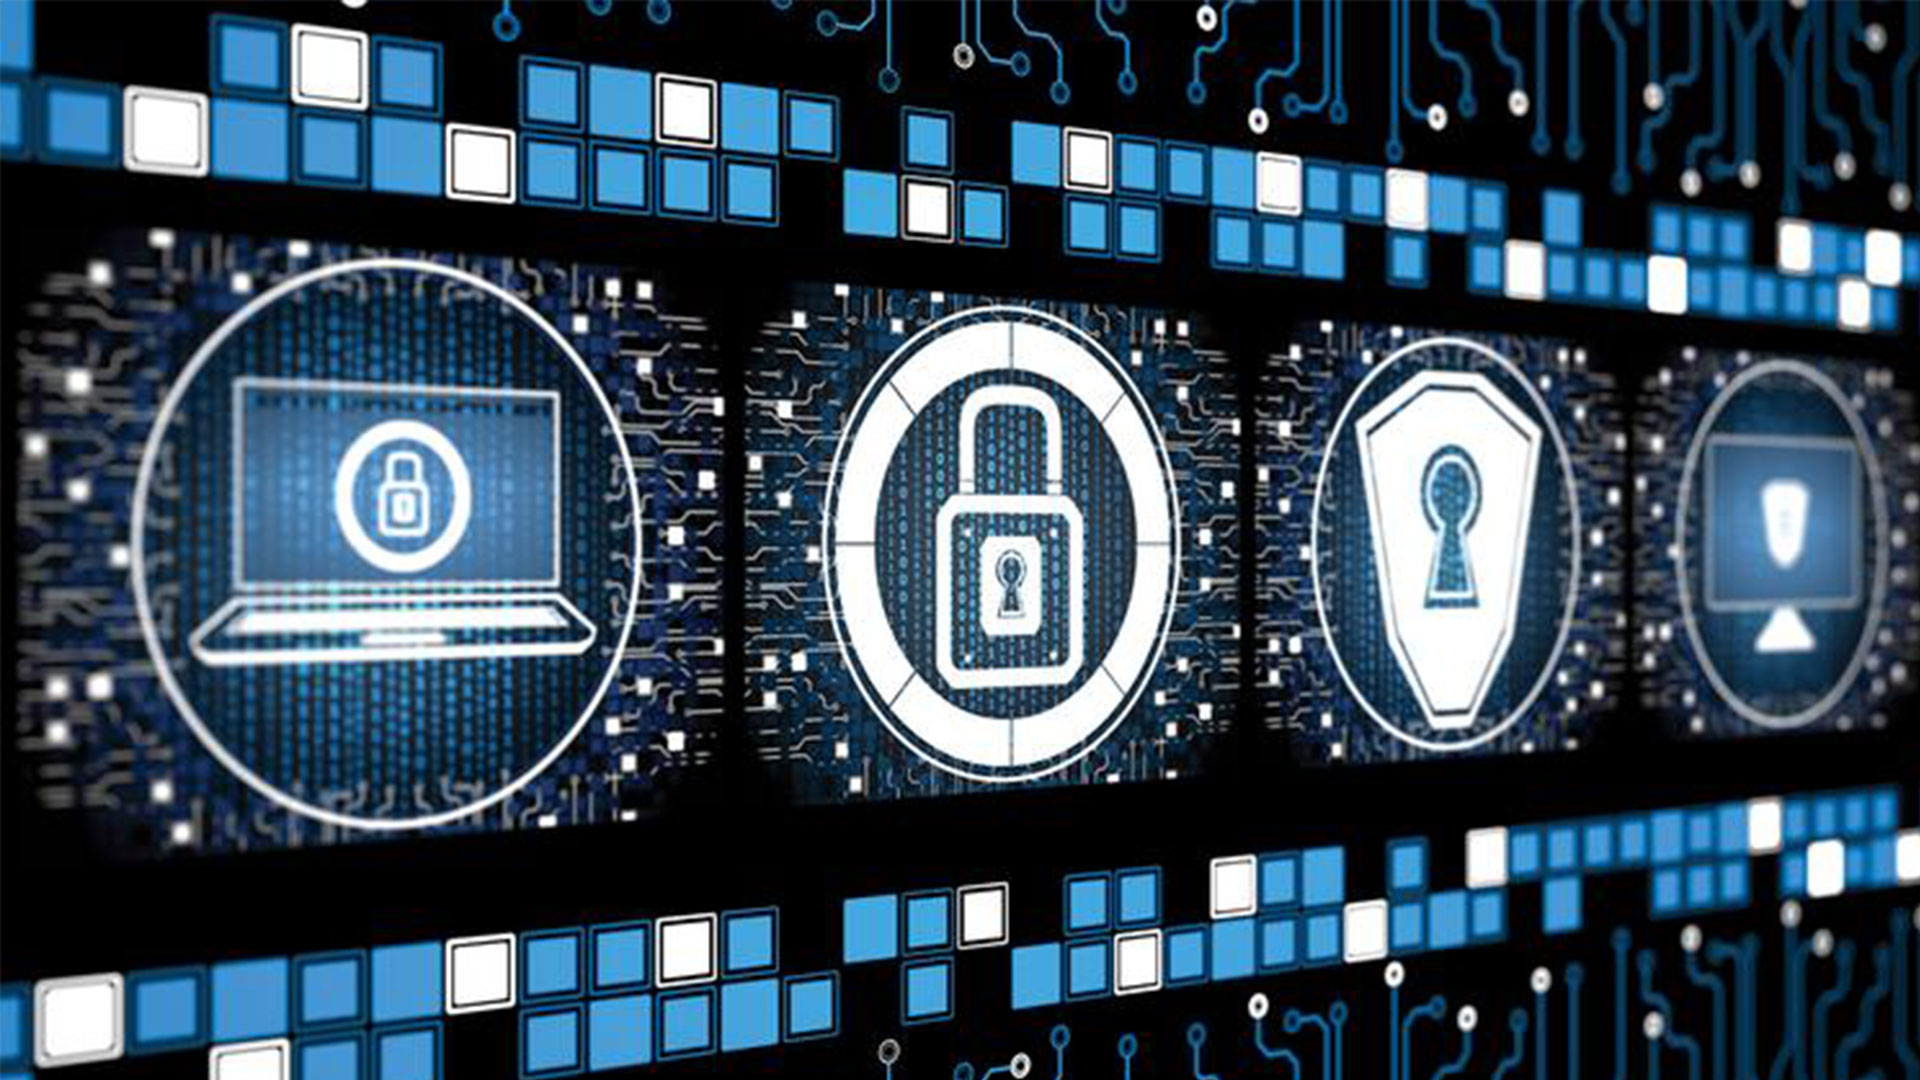 Cyber Security Tips to protect your business - John Sileo